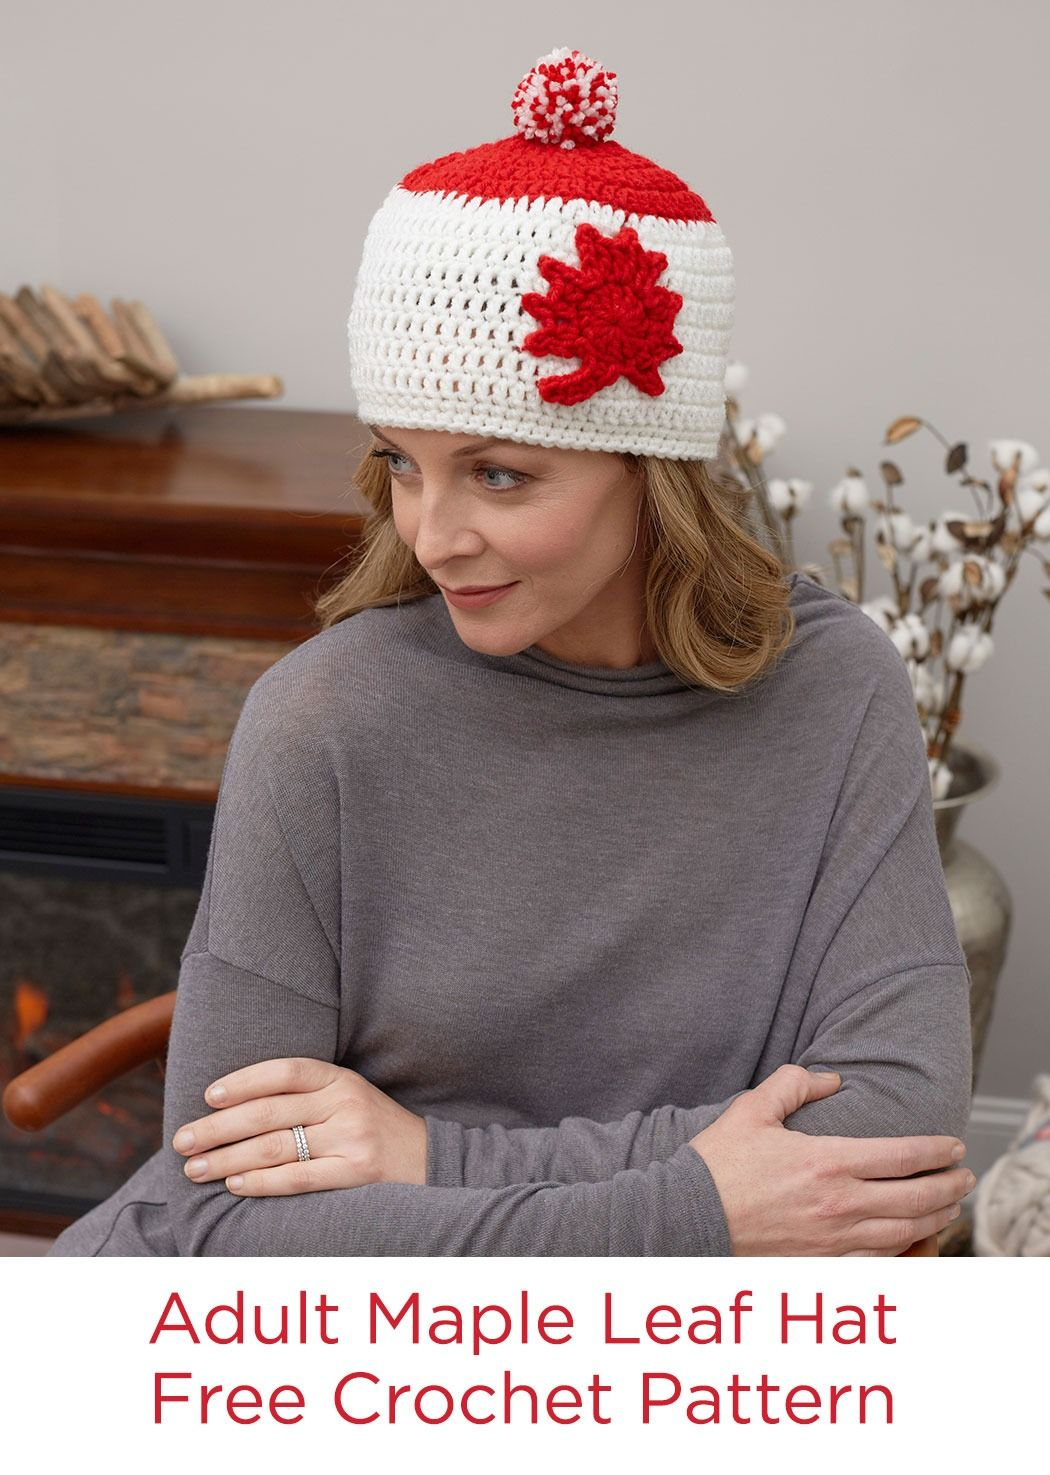 Adult Maple Leaf Hat Free Crochet Pattern in Red Heart Yarns ...